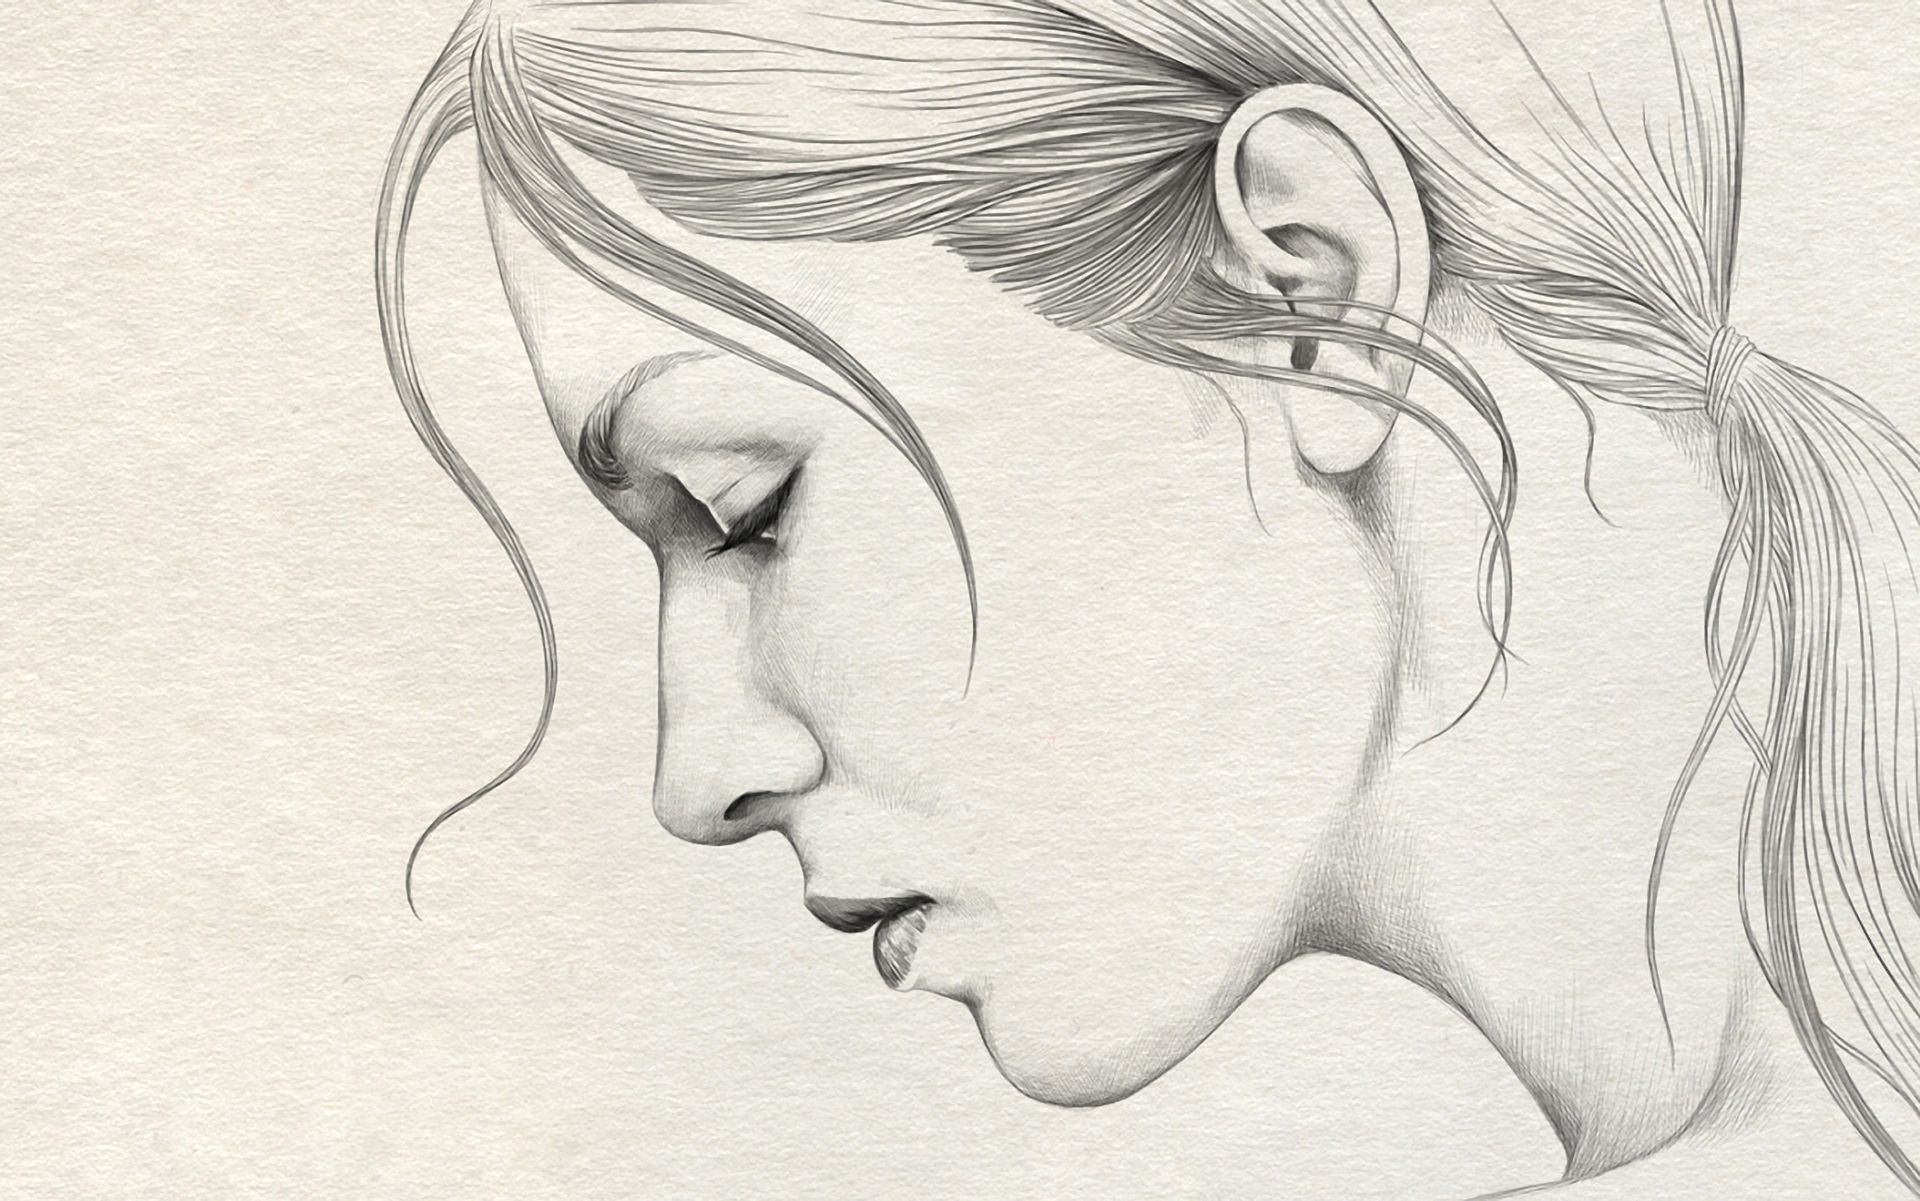 Hd Pencil Drawing